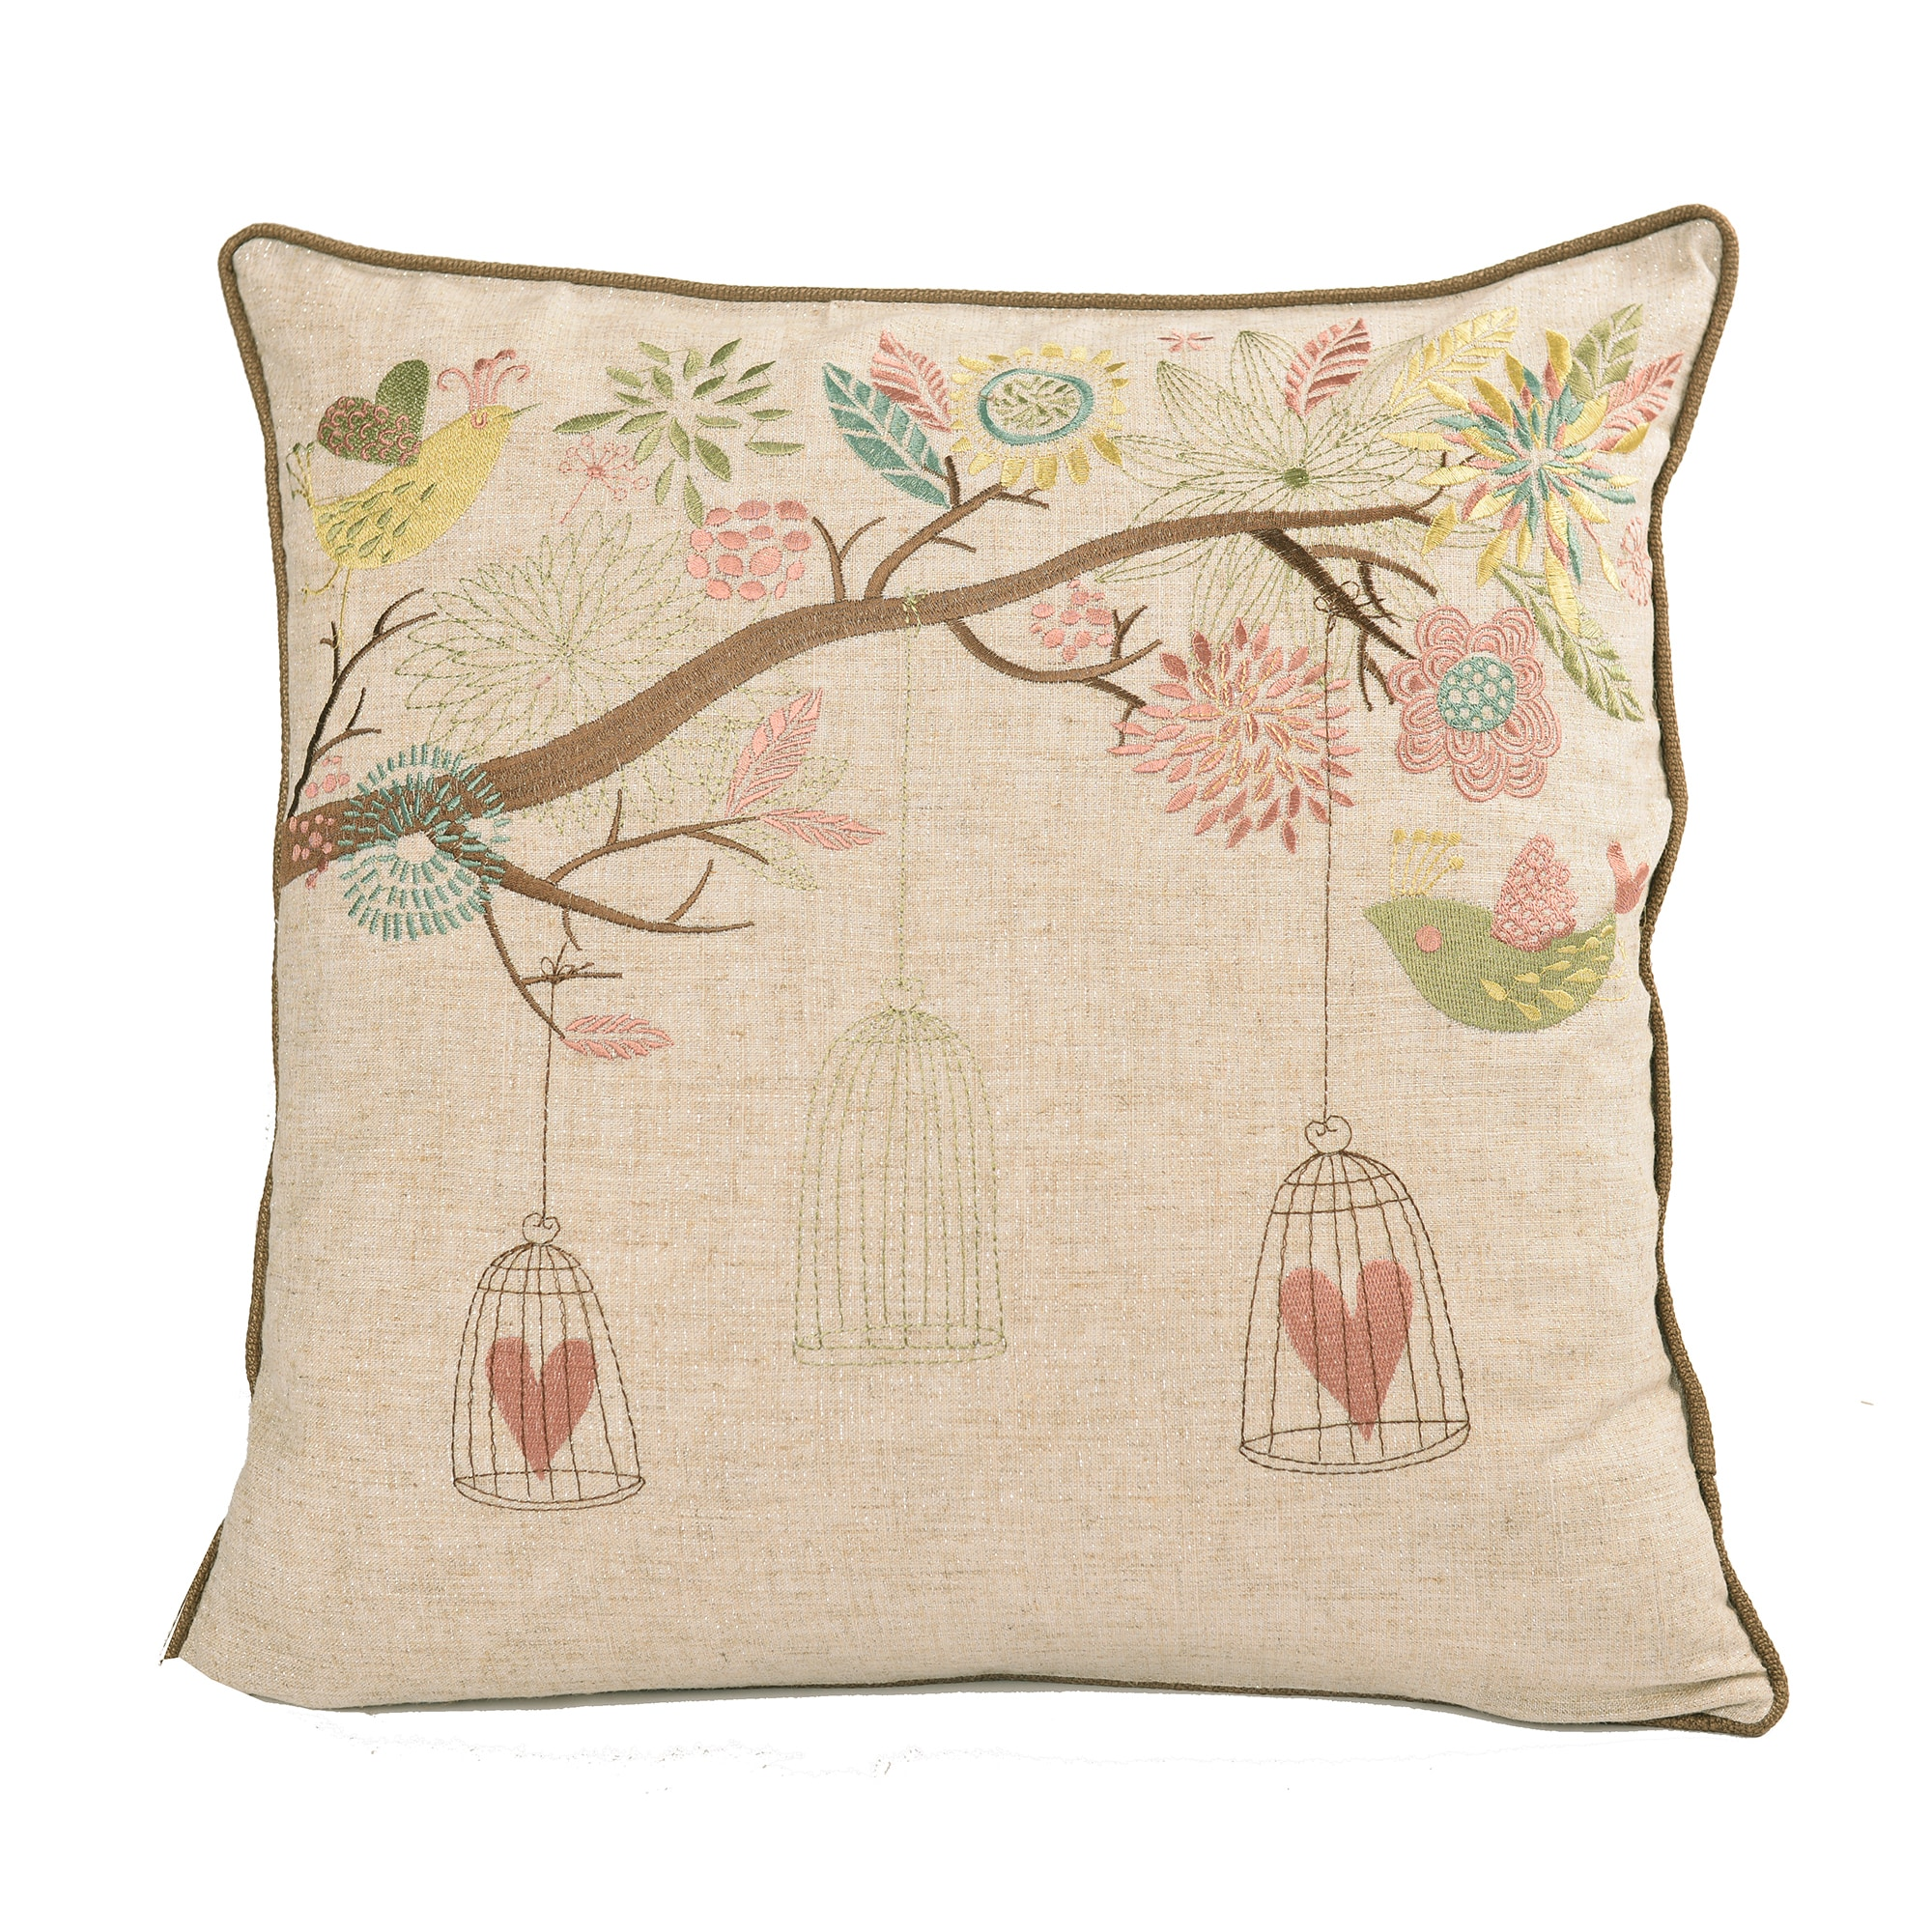 Embroidered Whimsical Shabby Chic Garden Poly Linen Throw Throw Pillowby Home Accent Pillows (Polyester - Tan)